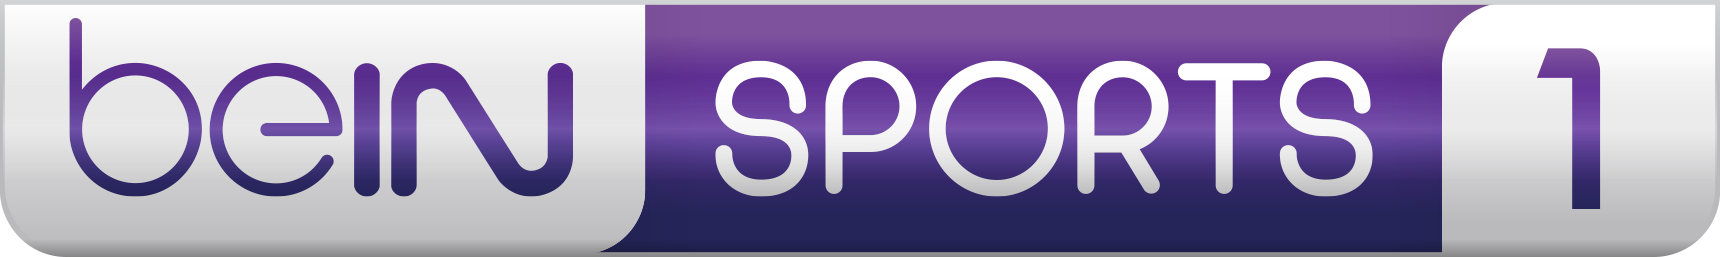 Image result for bein sport 1.png